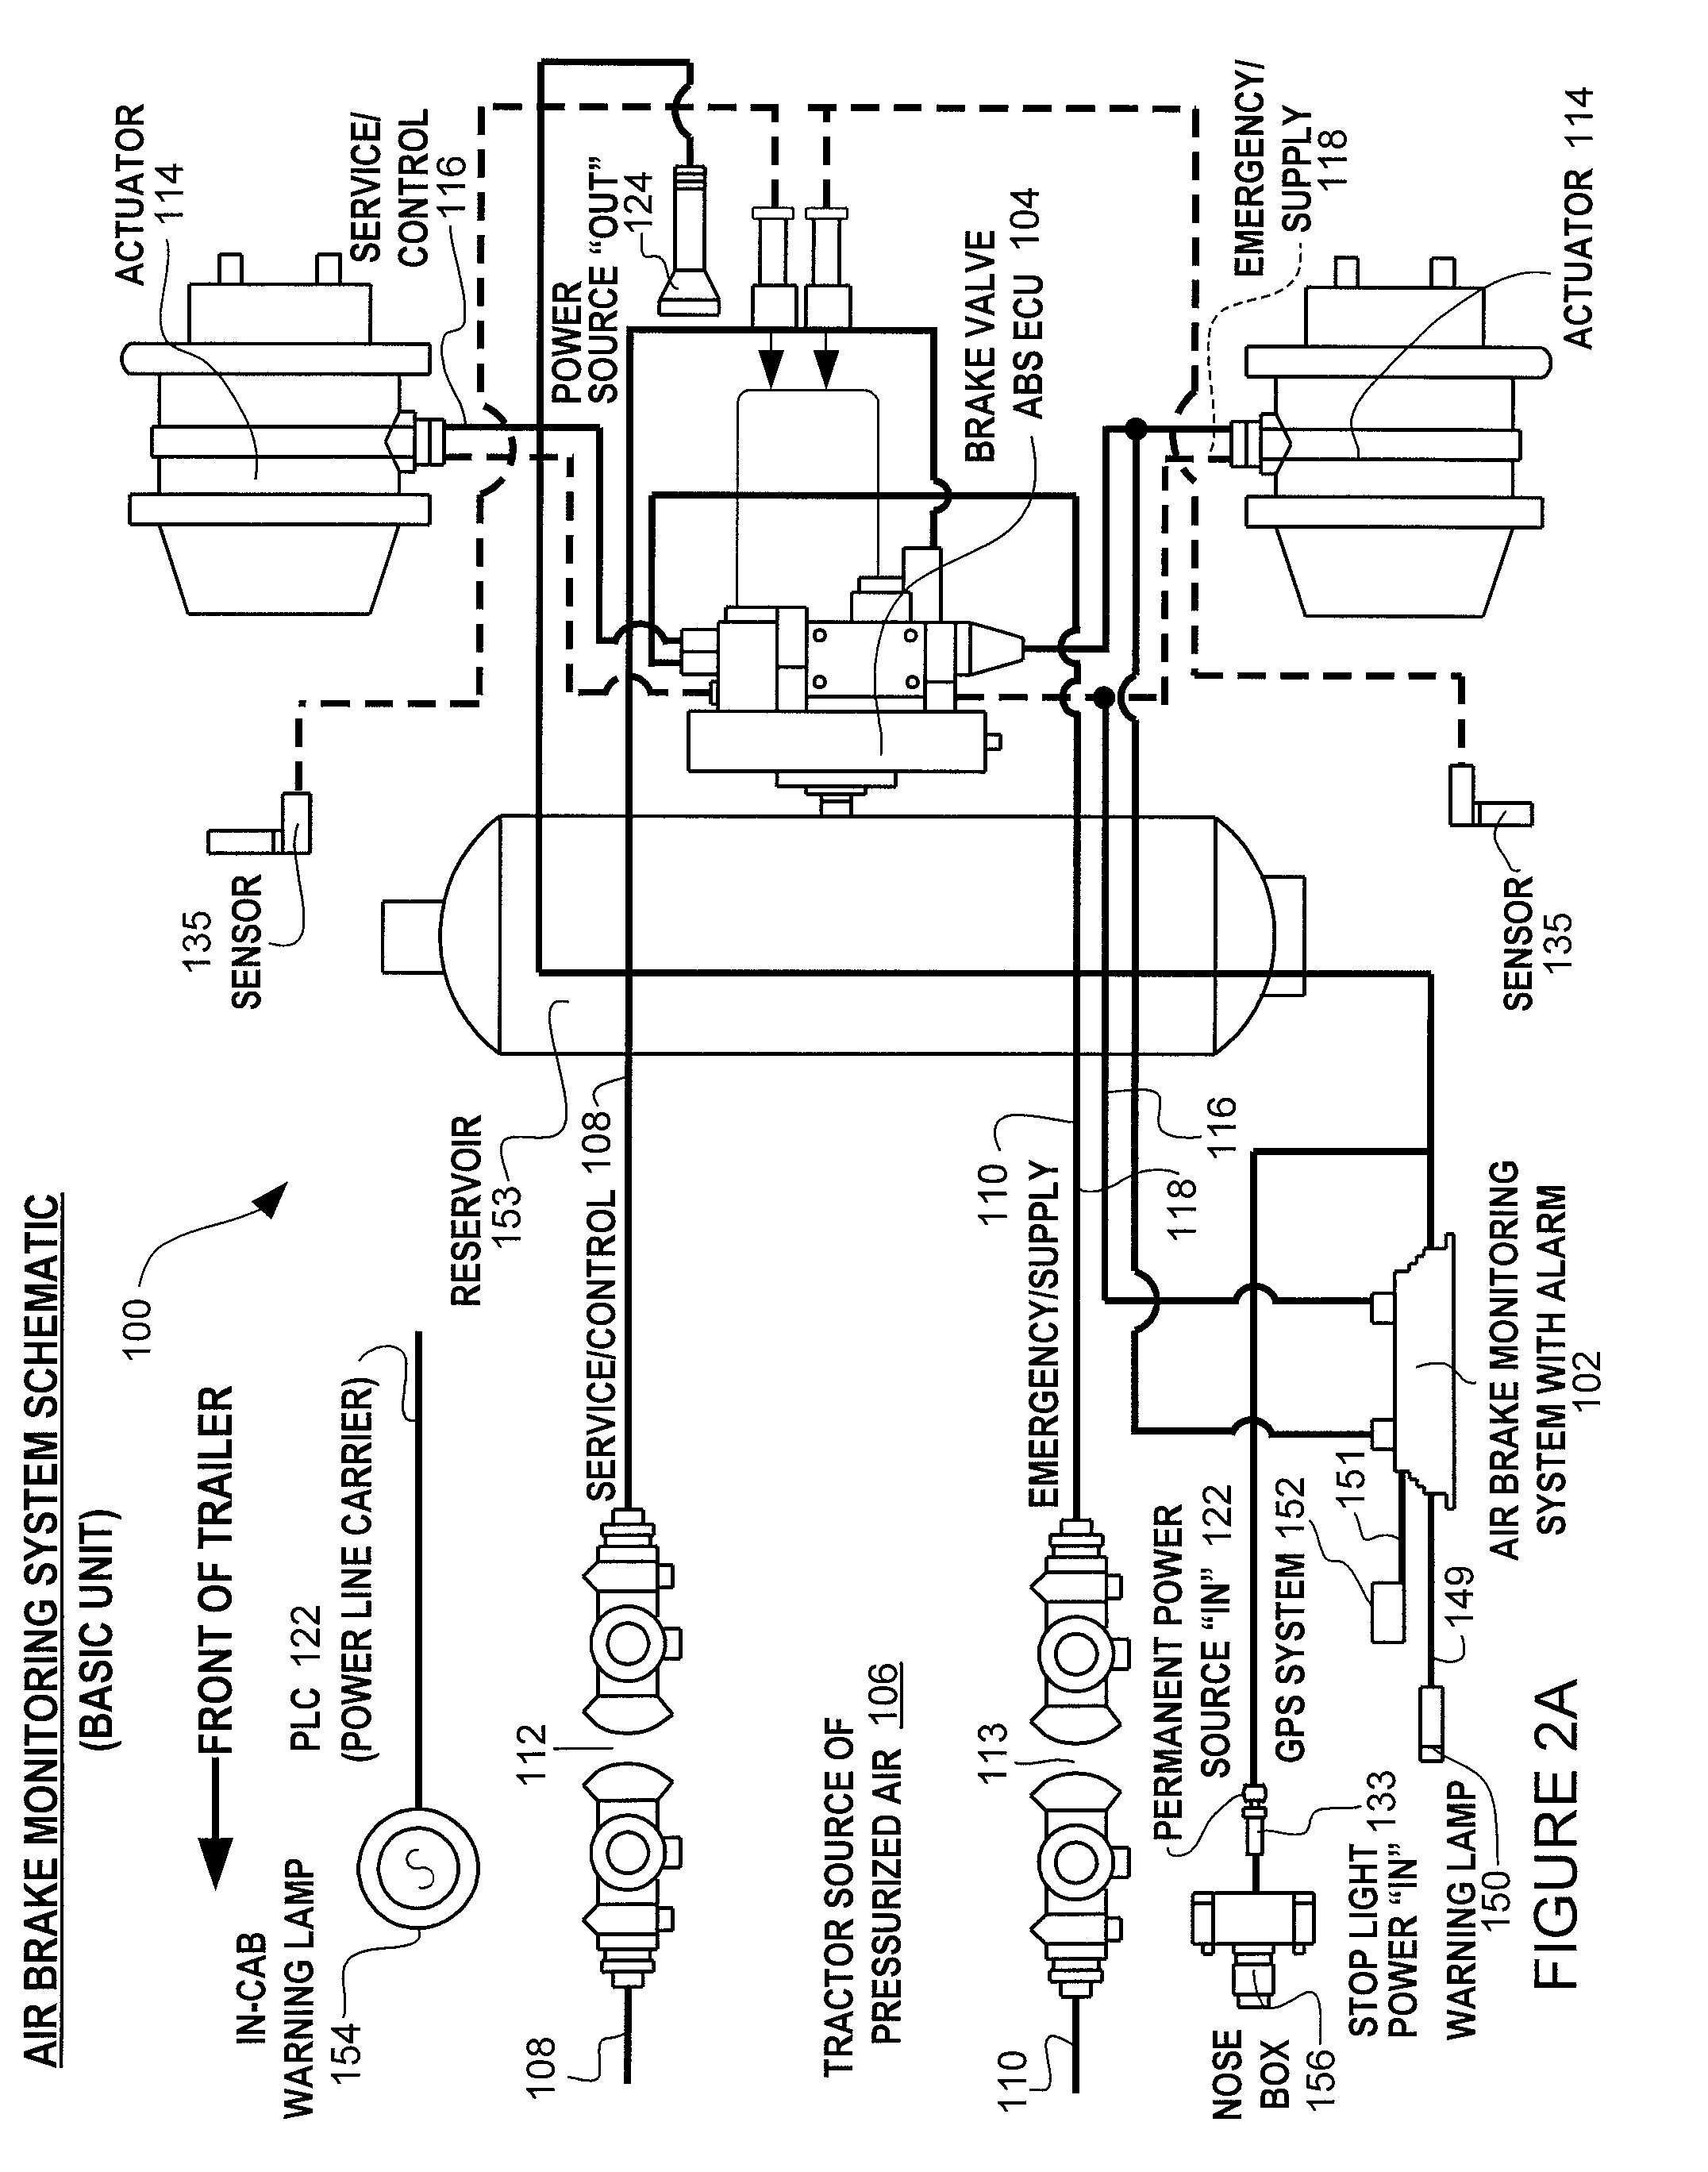 bendix foot valve schematic